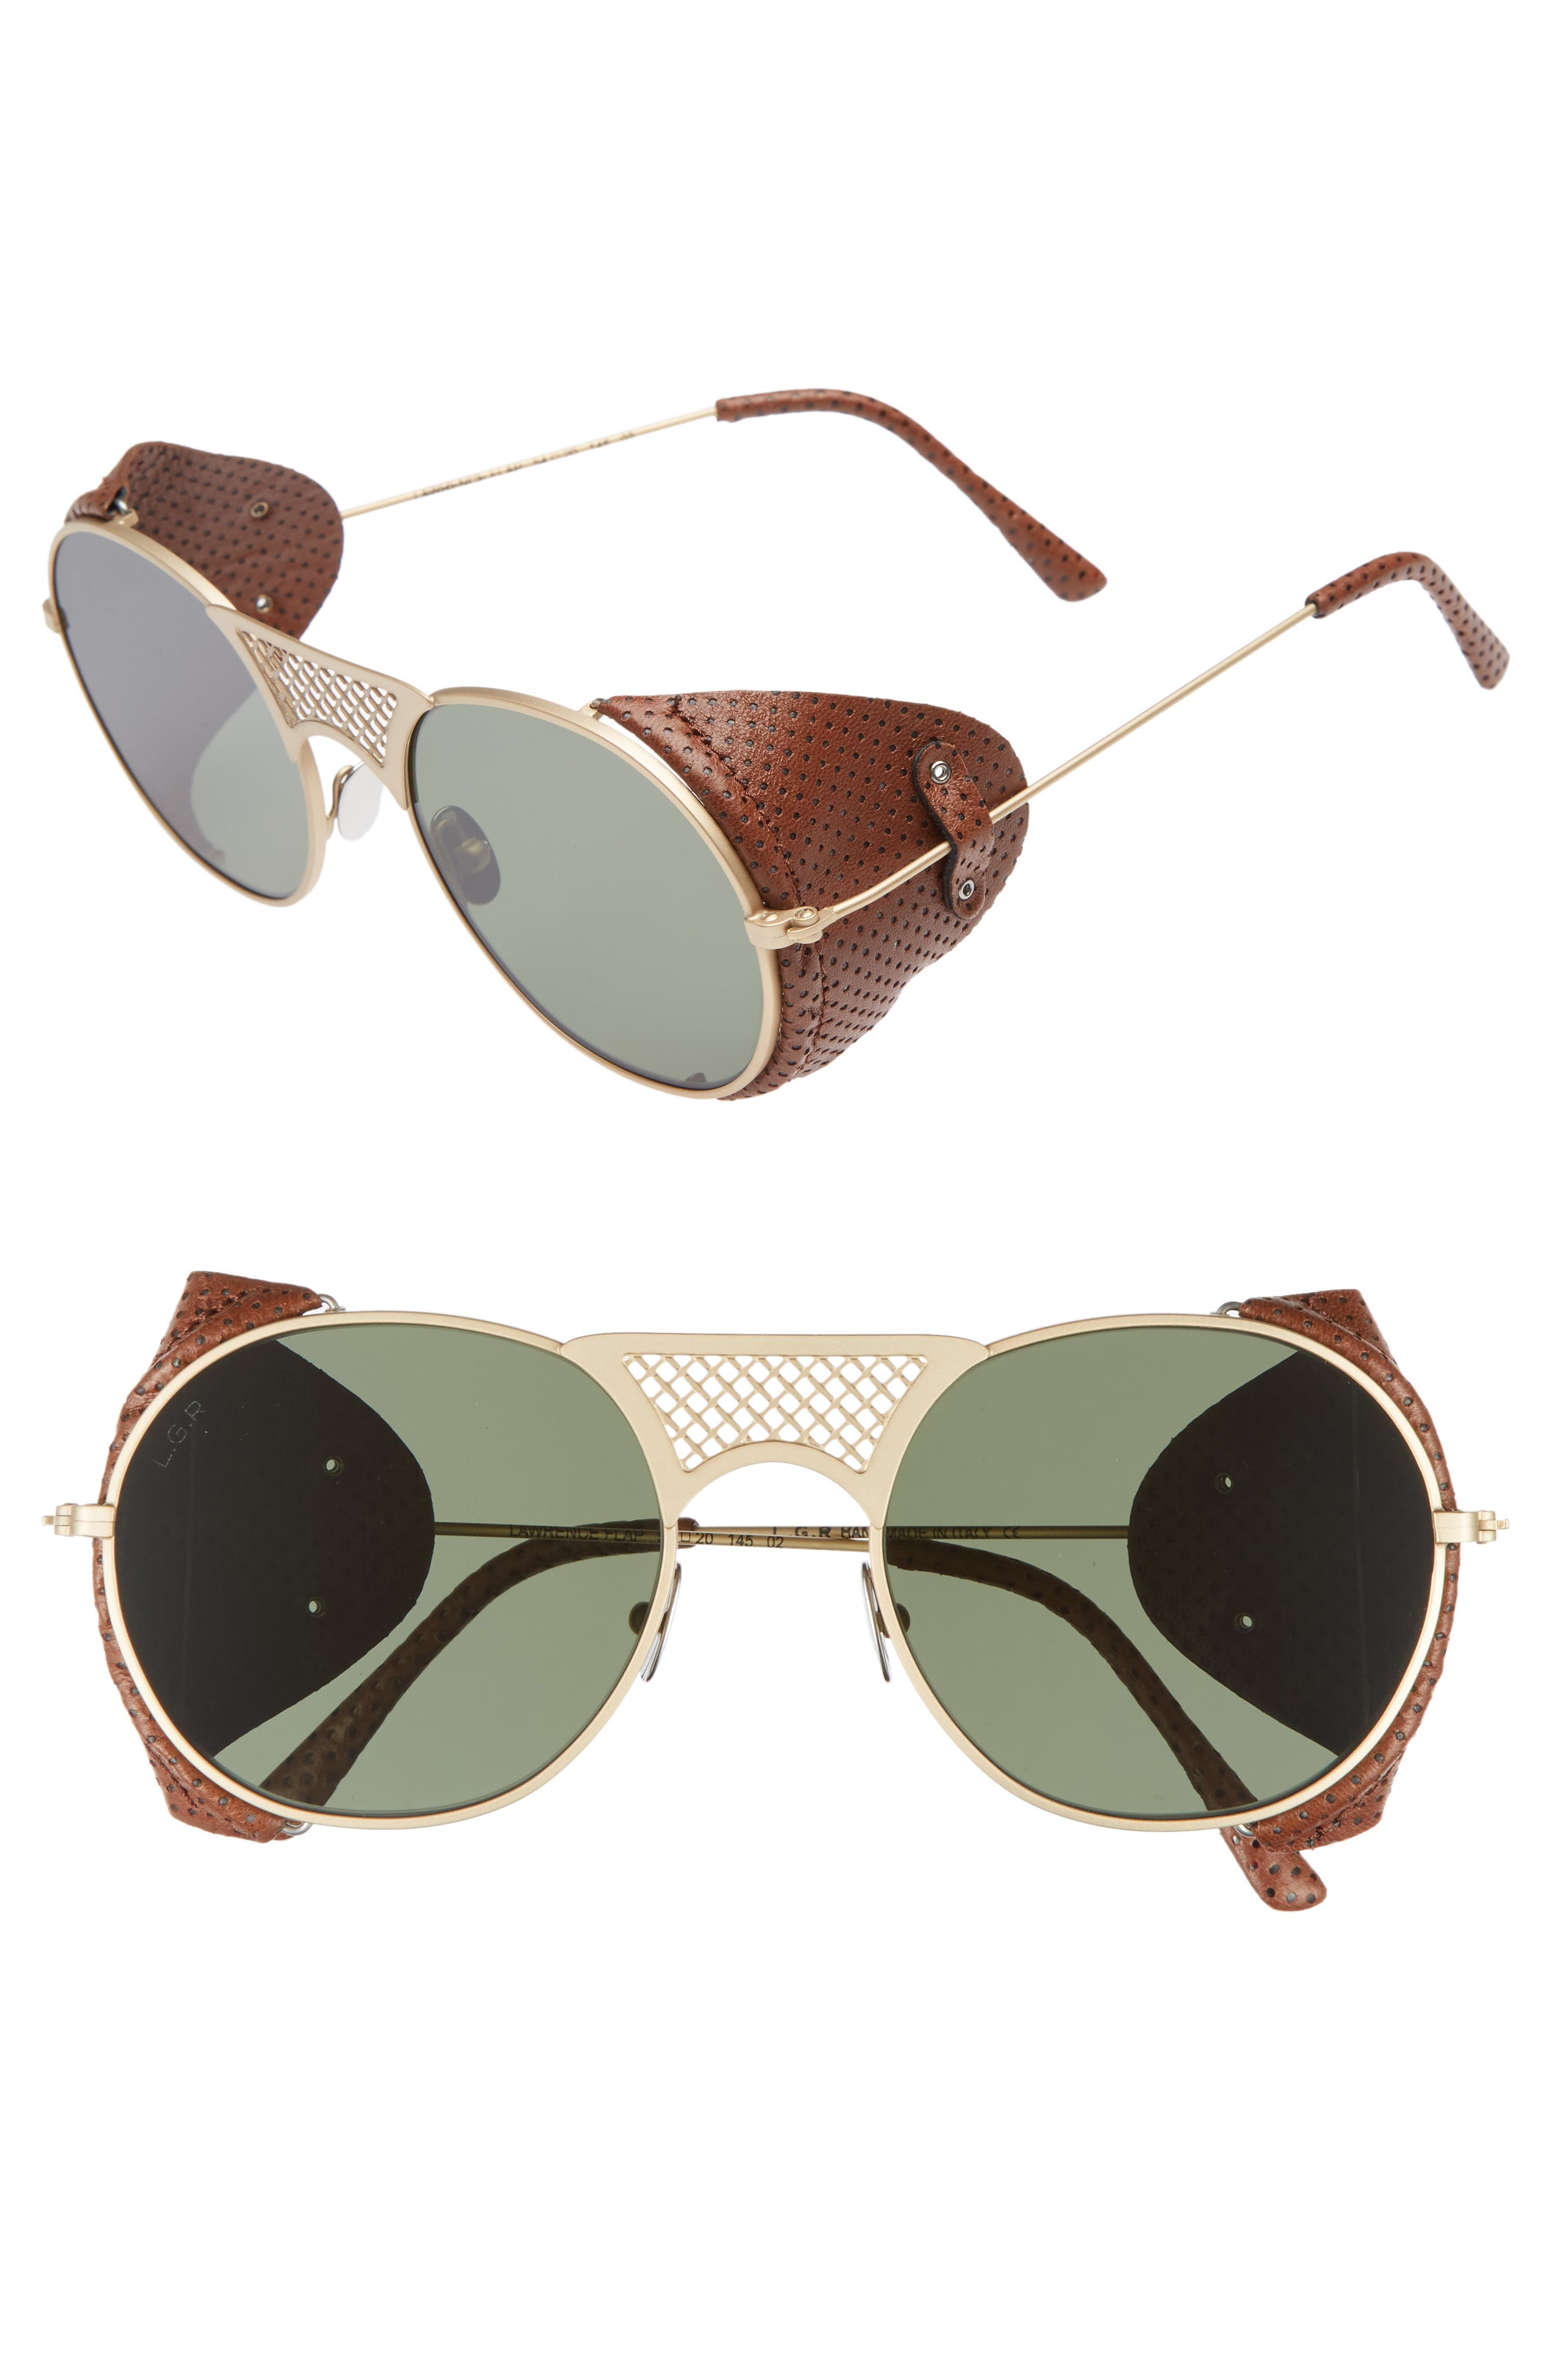 Lawrence 54mm Sunglasses,                             Main thumbnail 2, color,